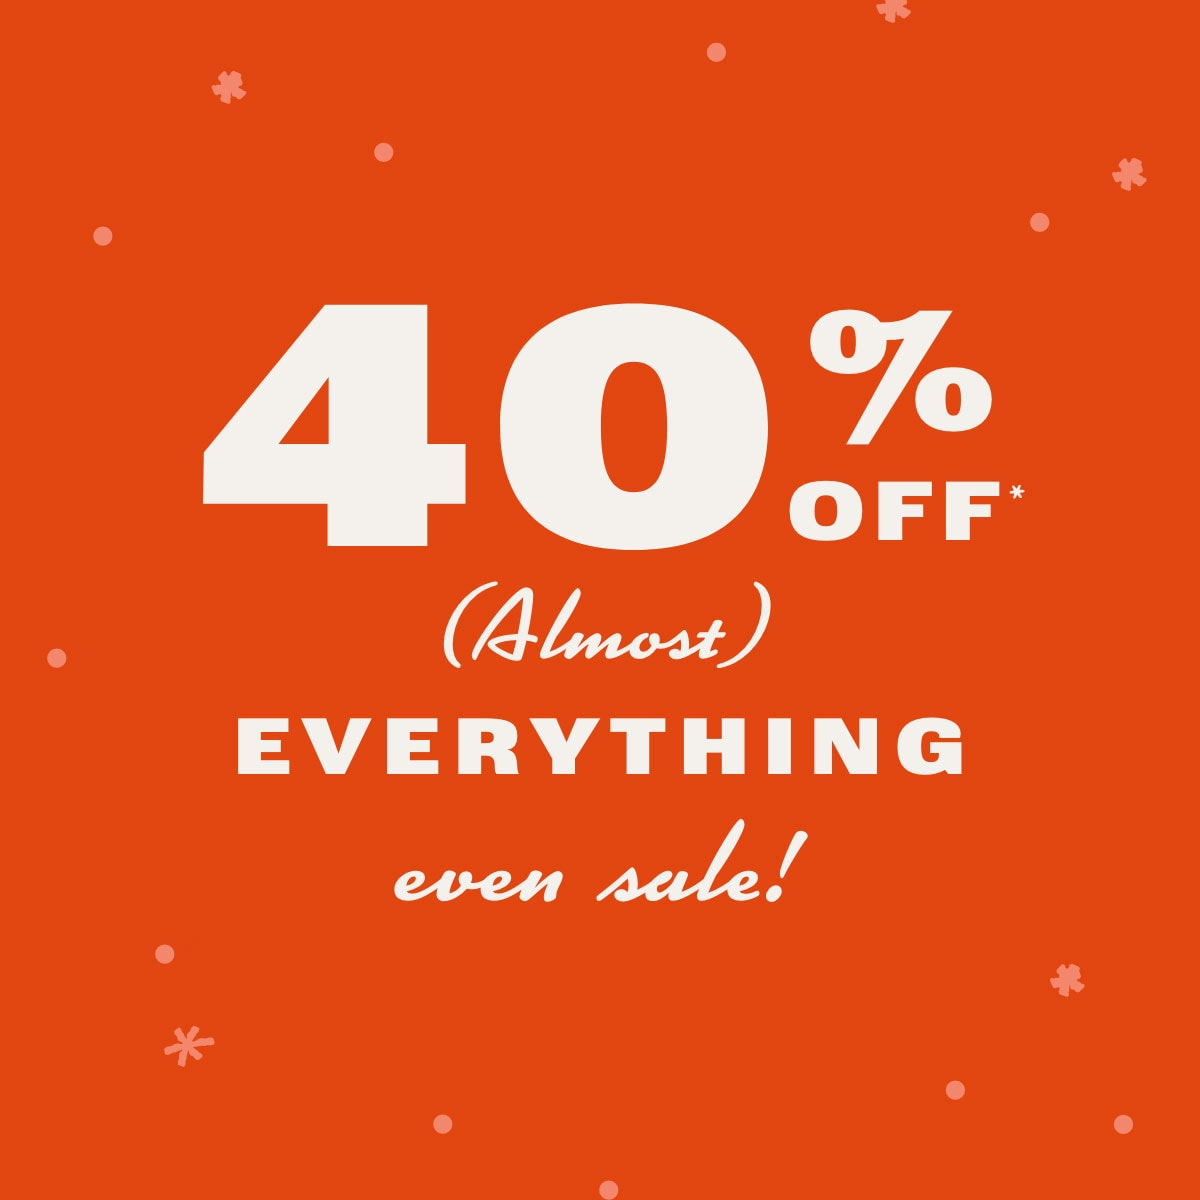 40% off almost everything even sale.